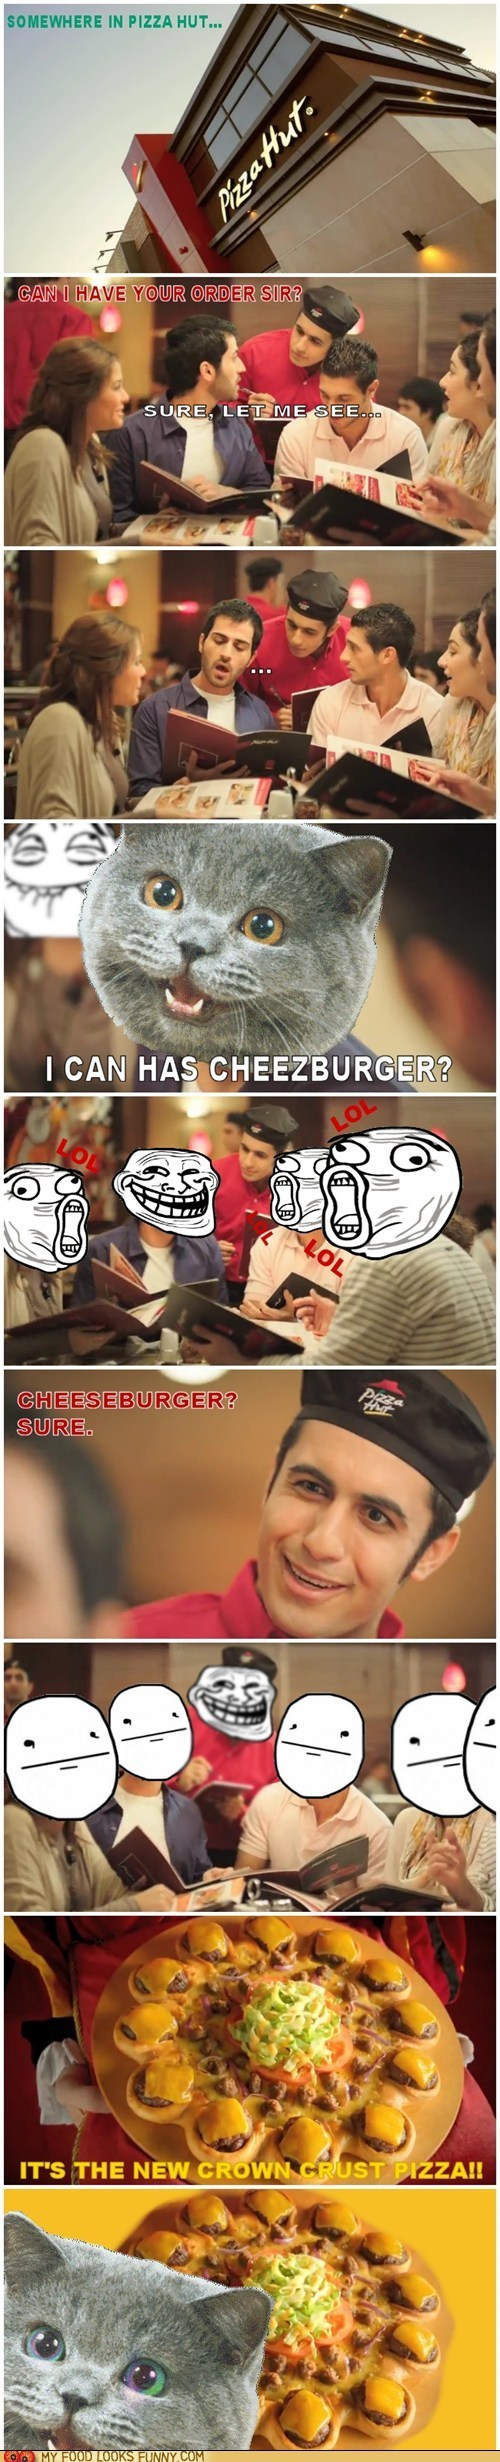 Cats,cheeseburger,cheezburgers,comic,commercial,food,happycat,multipanel,pizza,pizza hut